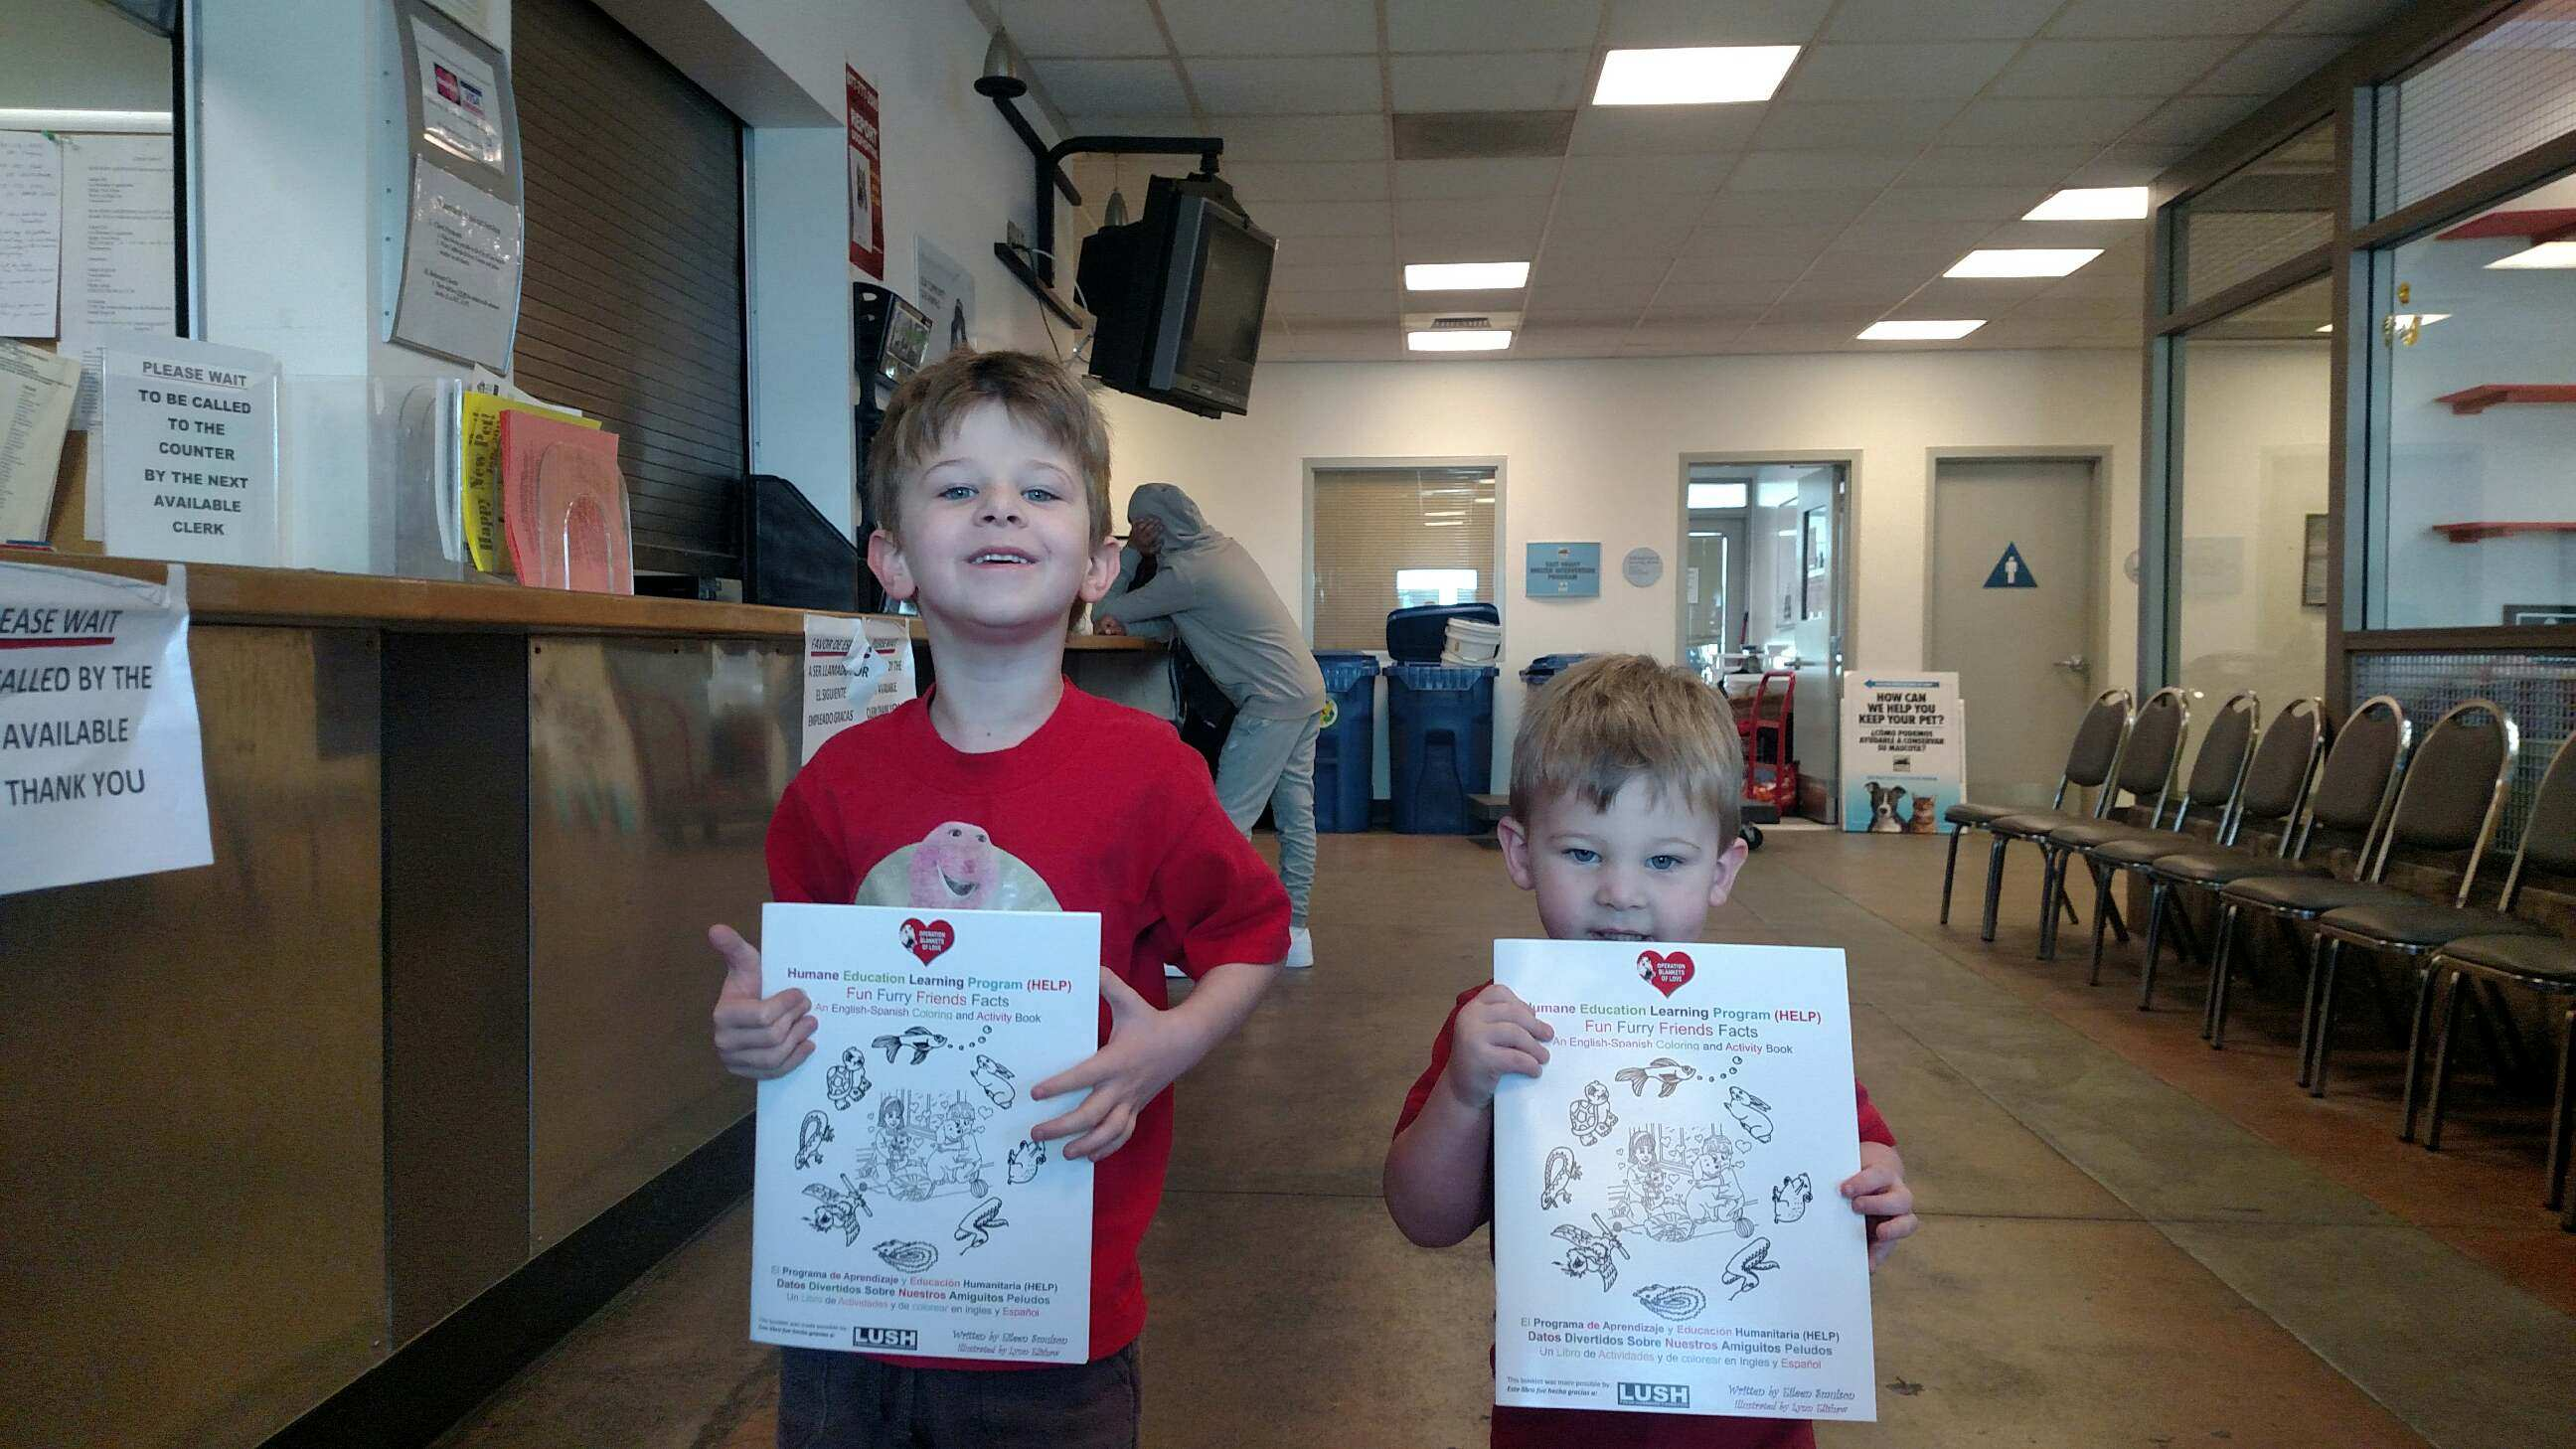 Children receive a free OBOL coloring and activity workbook while at a shelter.